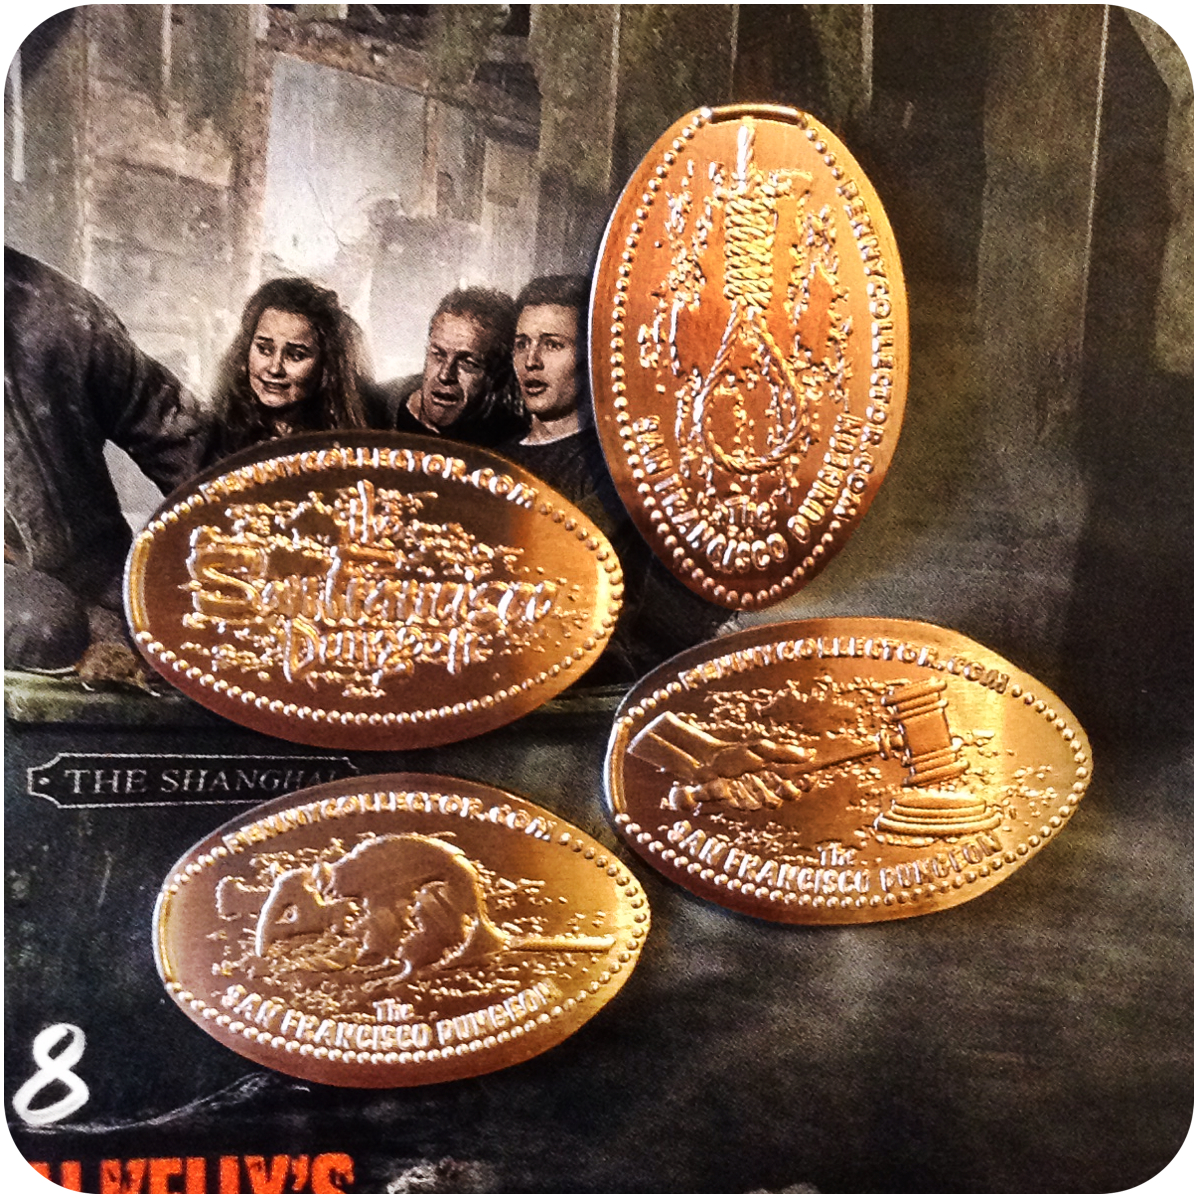 Full Copper Set of The San Francisco Dungeon at Fisherman's Wharf plus Brochure!